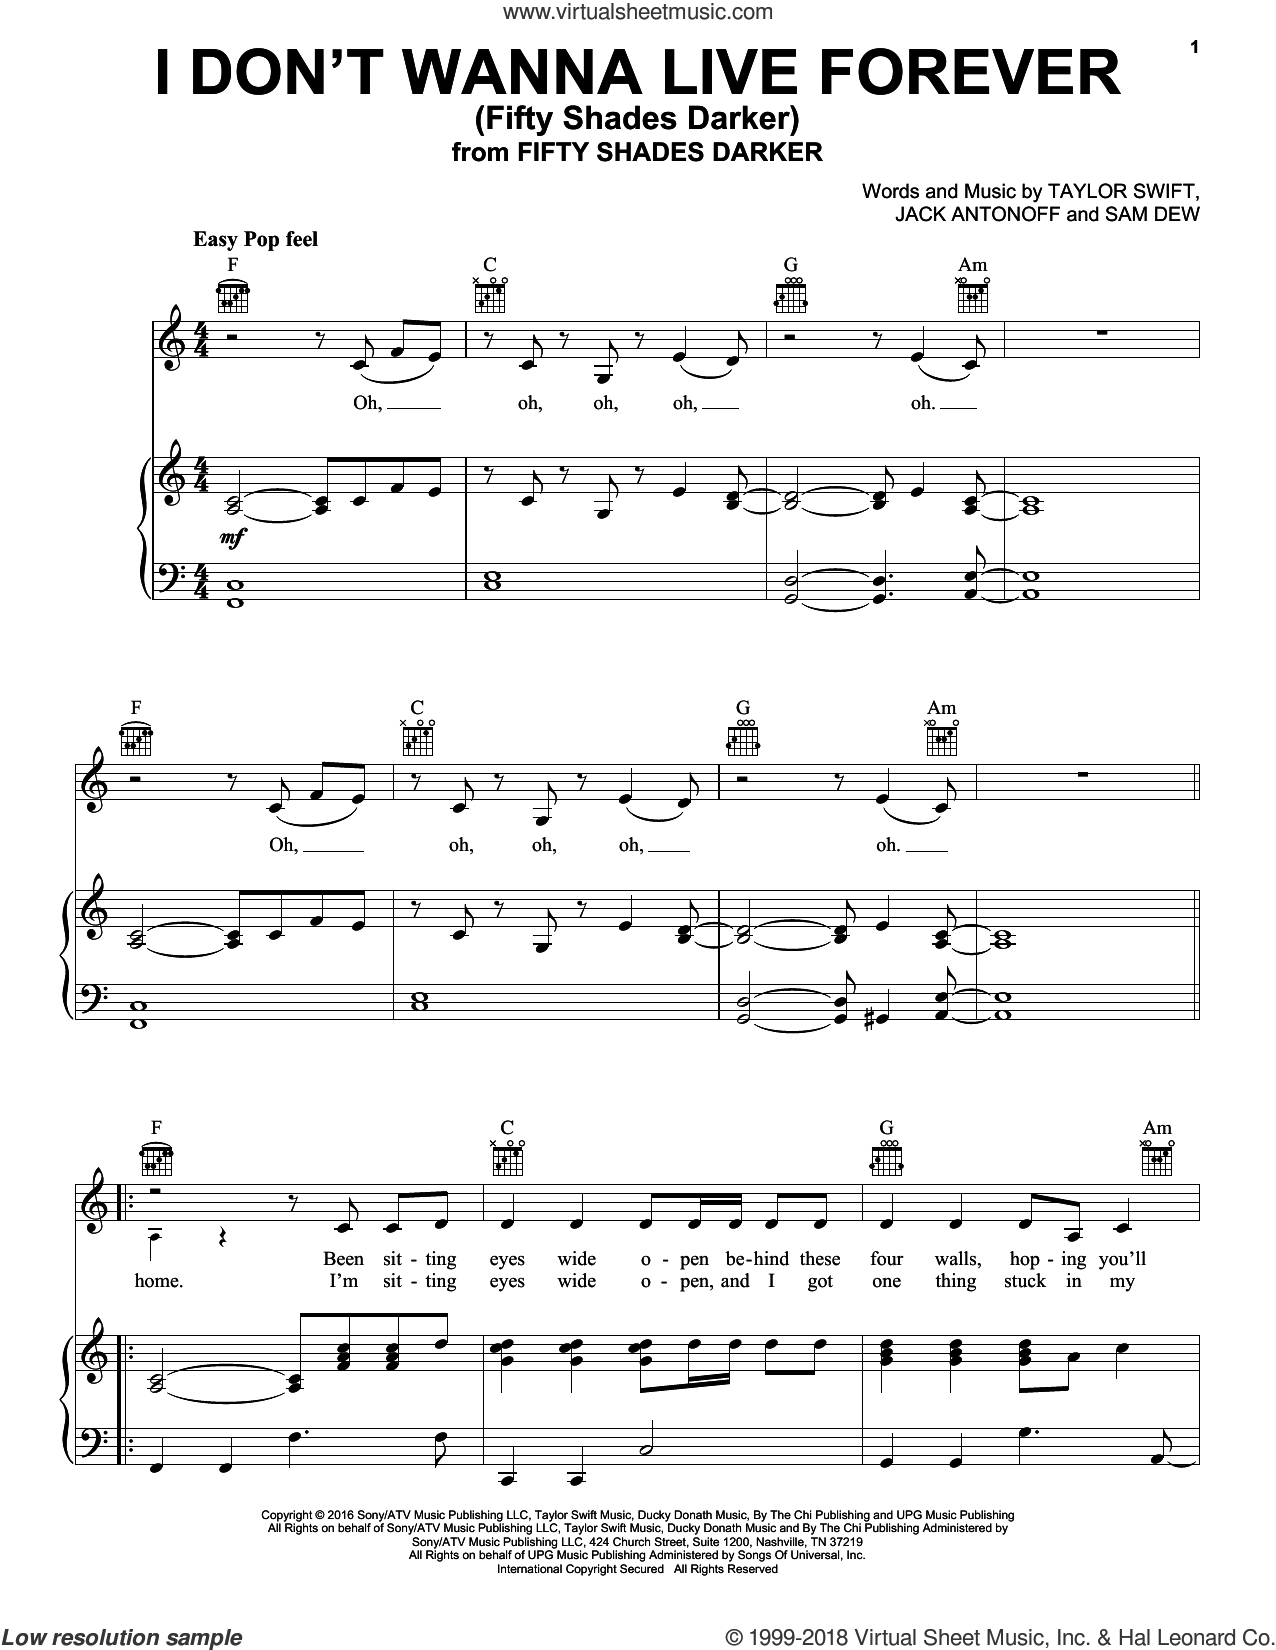 I Don't Wanna Live Forever sheet music for voice, piano or guitar by Zayn and Taylor Swift, Jack Antonoff, Sam Dew and Taylor Swift, intermediate skill level